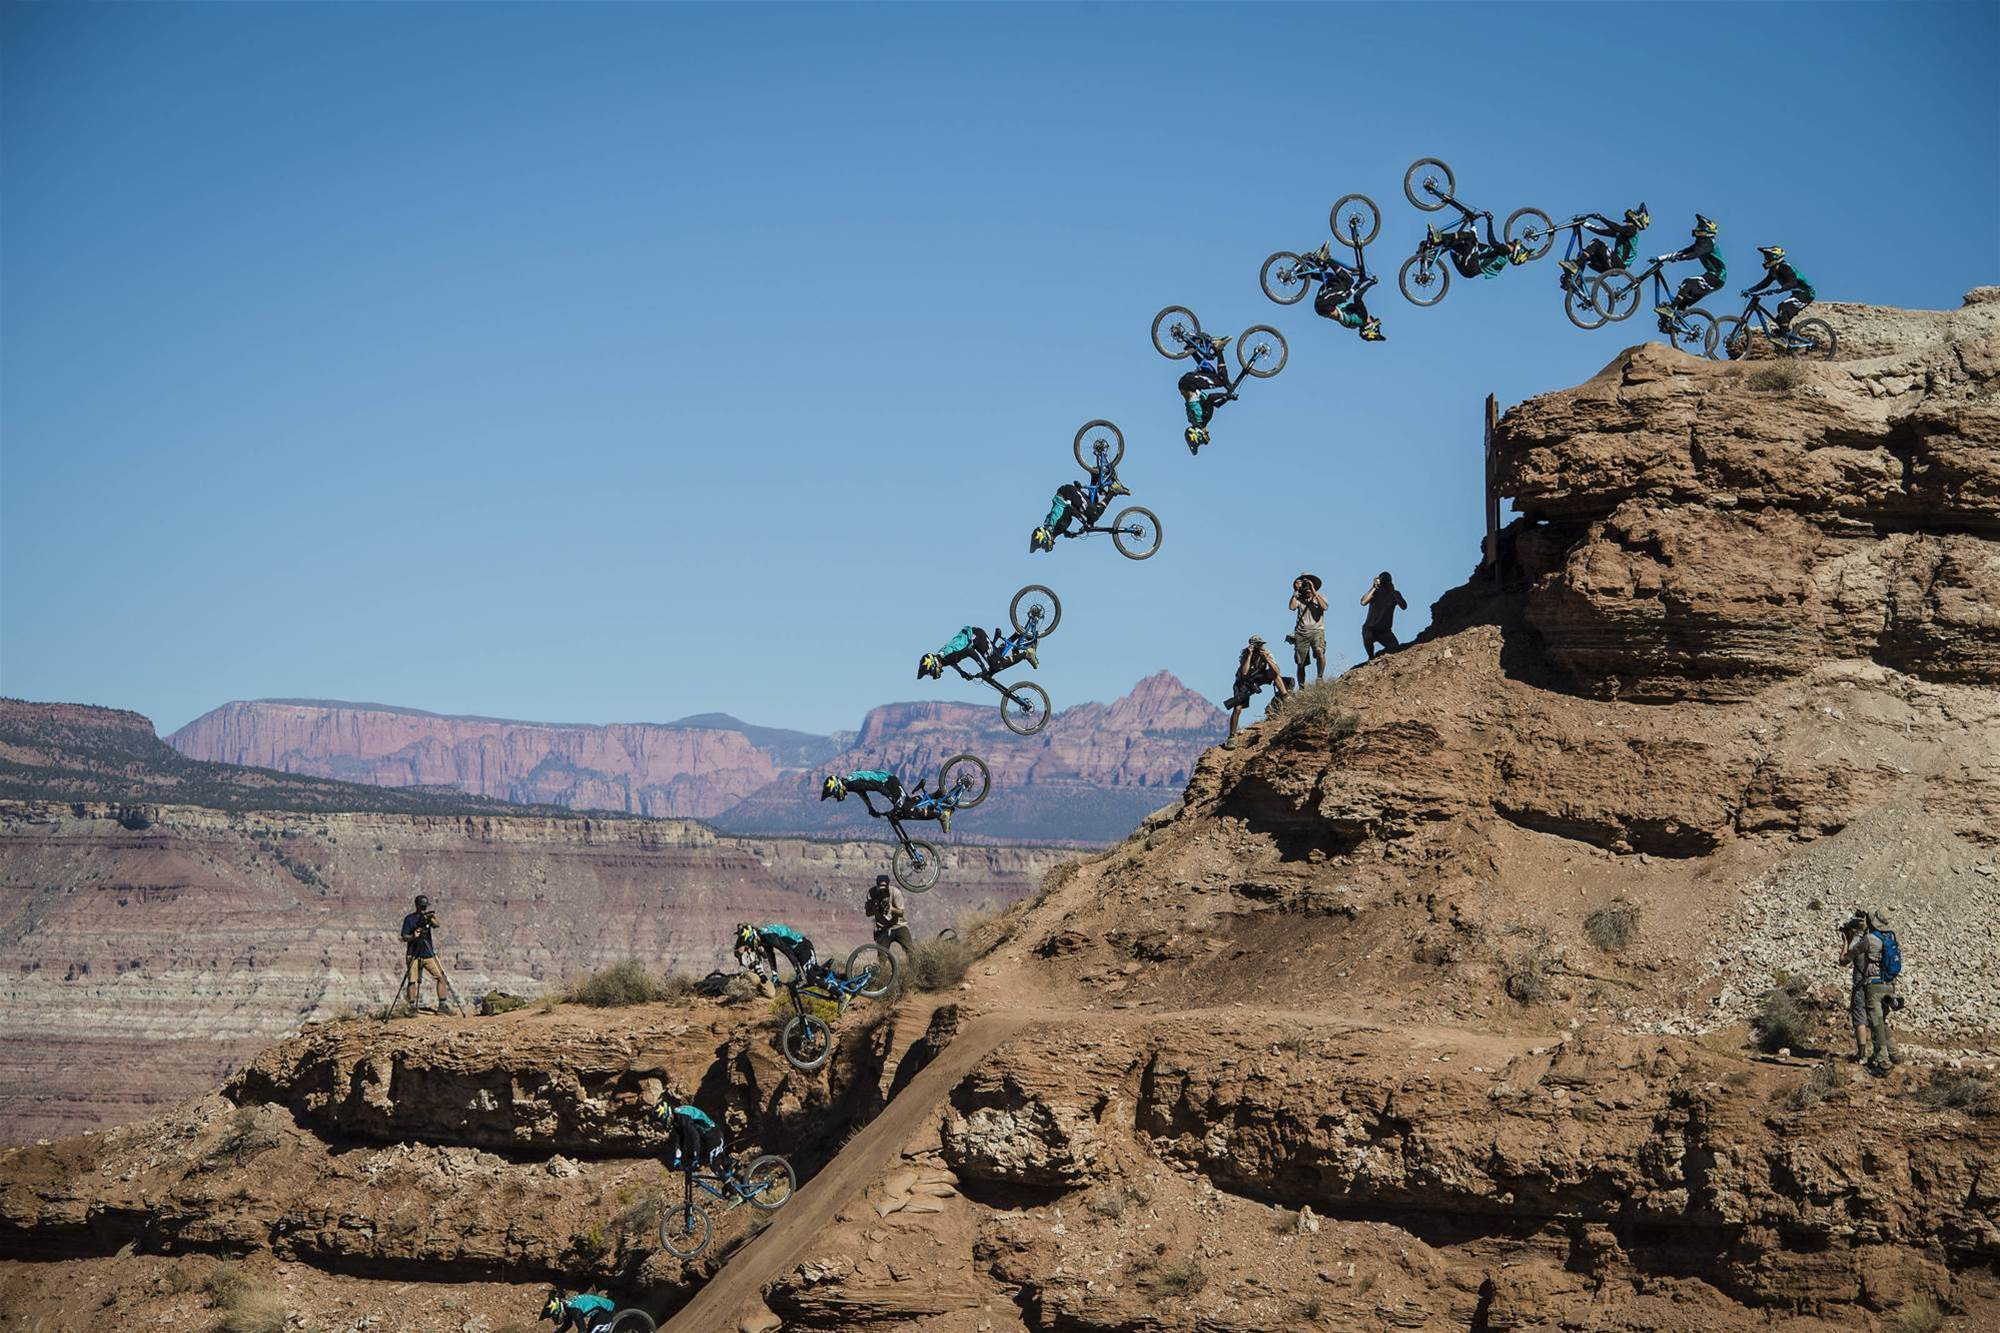 Kurt Sorge wins the 12th edition of Red Bull Rampage